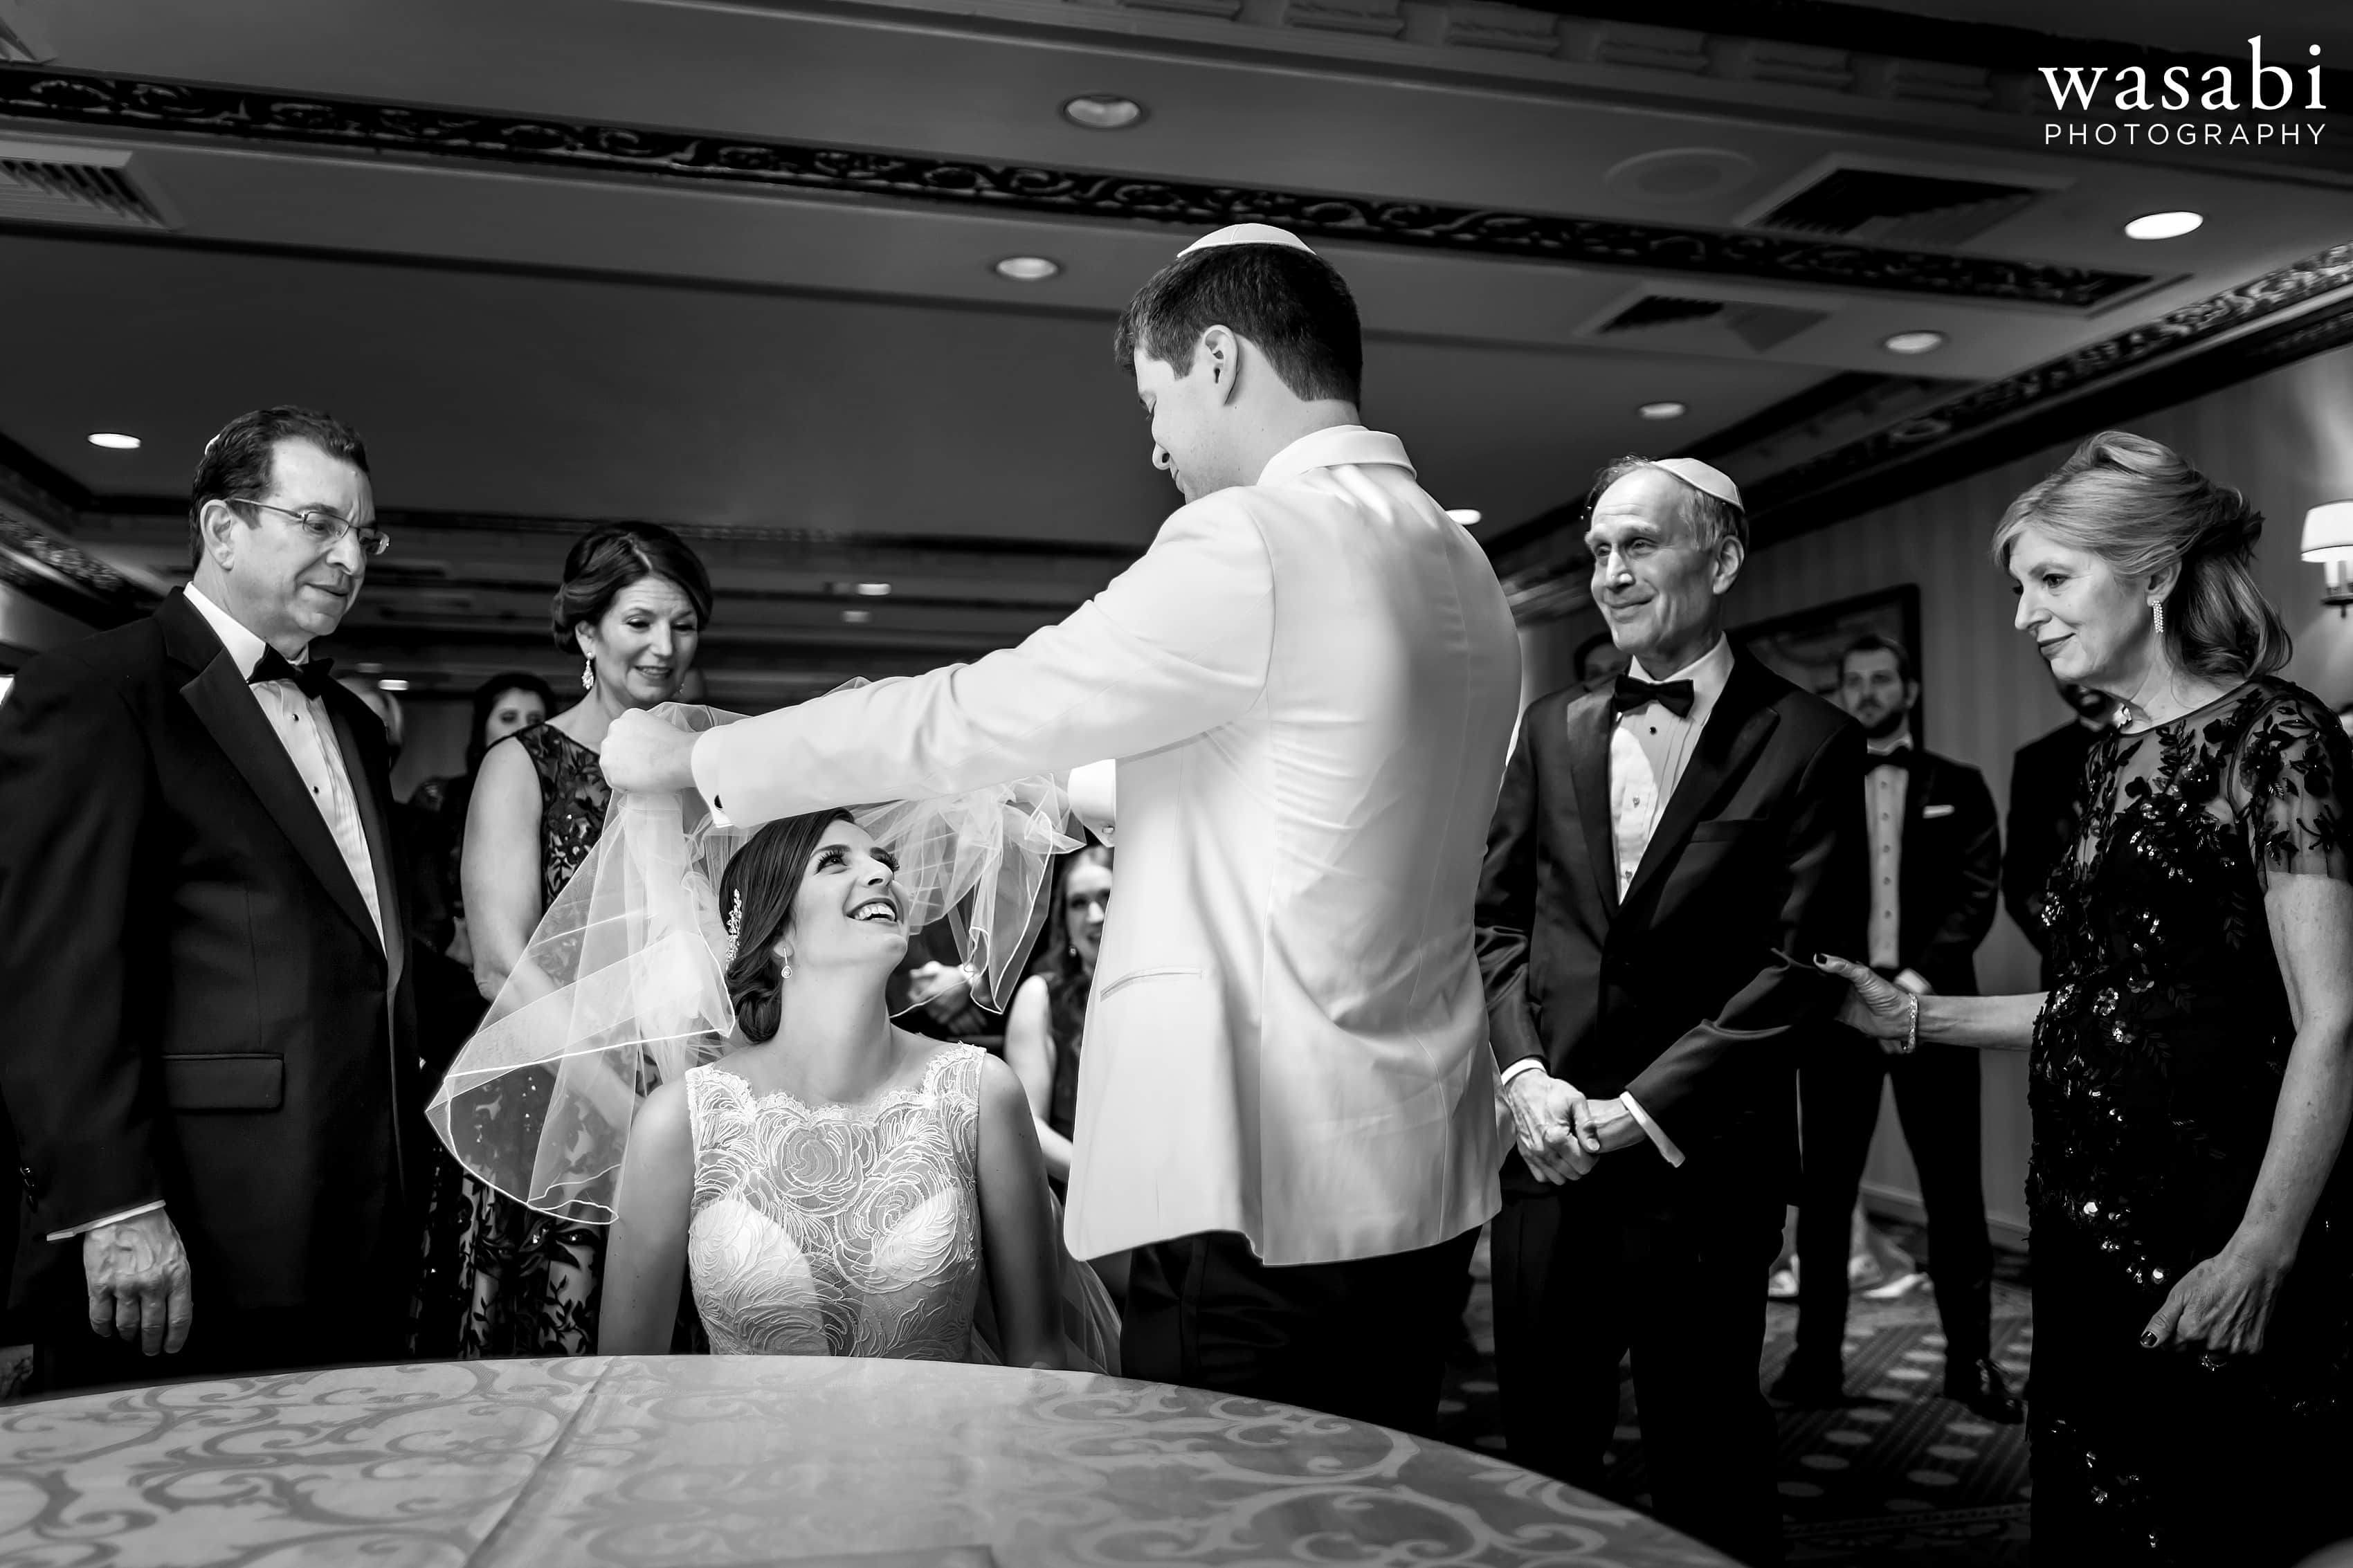 Bride and groom with parents during ketubah ceremony before Jewish wedding at InterContinental Chicago Magnificent Mile Hotel